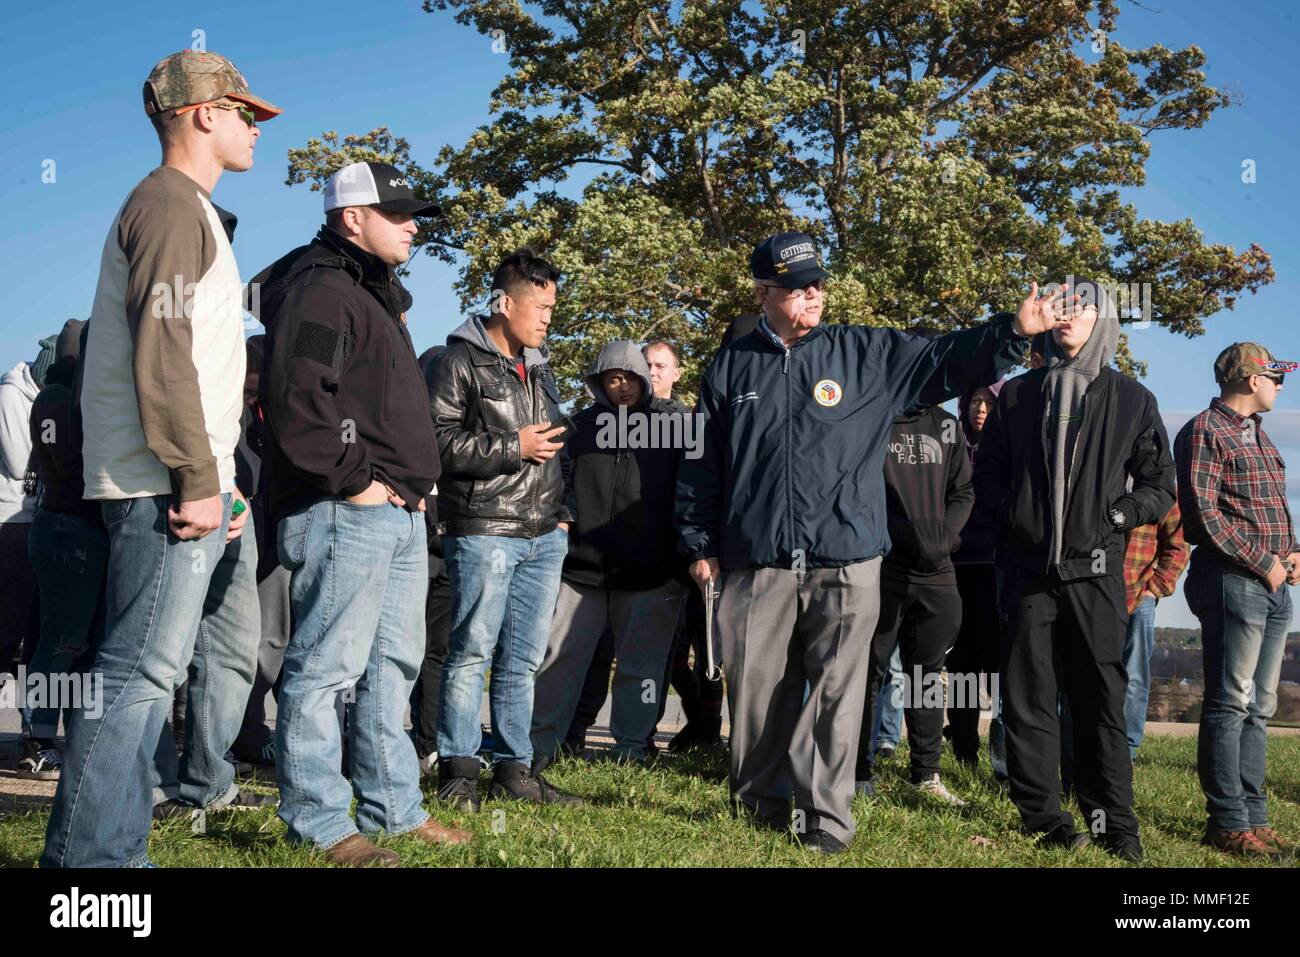 171030-N-FG807-072   GETTYSBURG, Pa. (Oct. 30, 2017) Sailors assigned to the aircraft carrier USS Dwight D. Eisenhower (CVN 69)(Ike) participate in a guided tour of the Dwight D. Eisenhower National Historic Site. Ike is undergoing a Planned Incremental Availability (PIA) at Norfolk Naval Shipyard during the maintenance phase of the Optimized Fleet Response Plan (OFRP).  (U.S. Navy photo by Mass Communication Specialist 3rd Class Devin Alexondra Lowe) Stock Photo